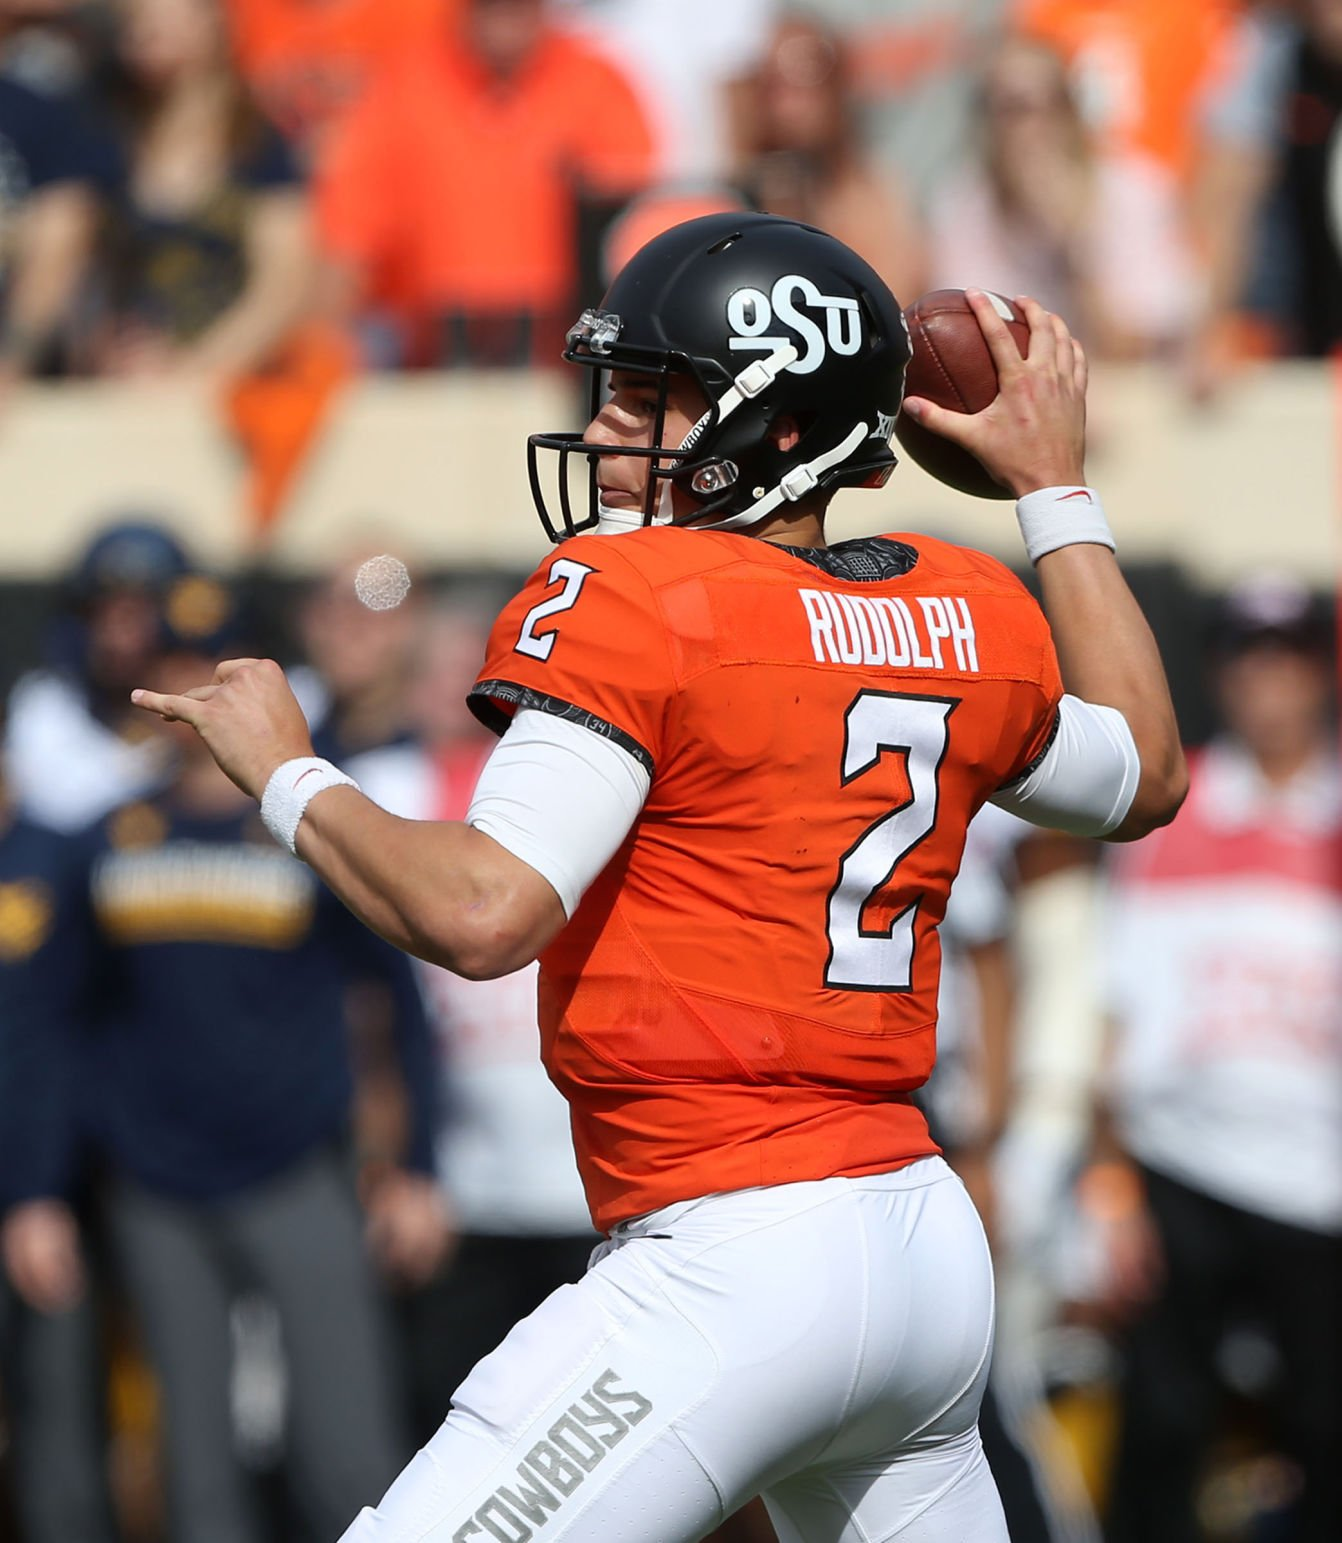 OSU Sports Extra - QB Mason Rudolph putting up solid numbers, protecting the ball